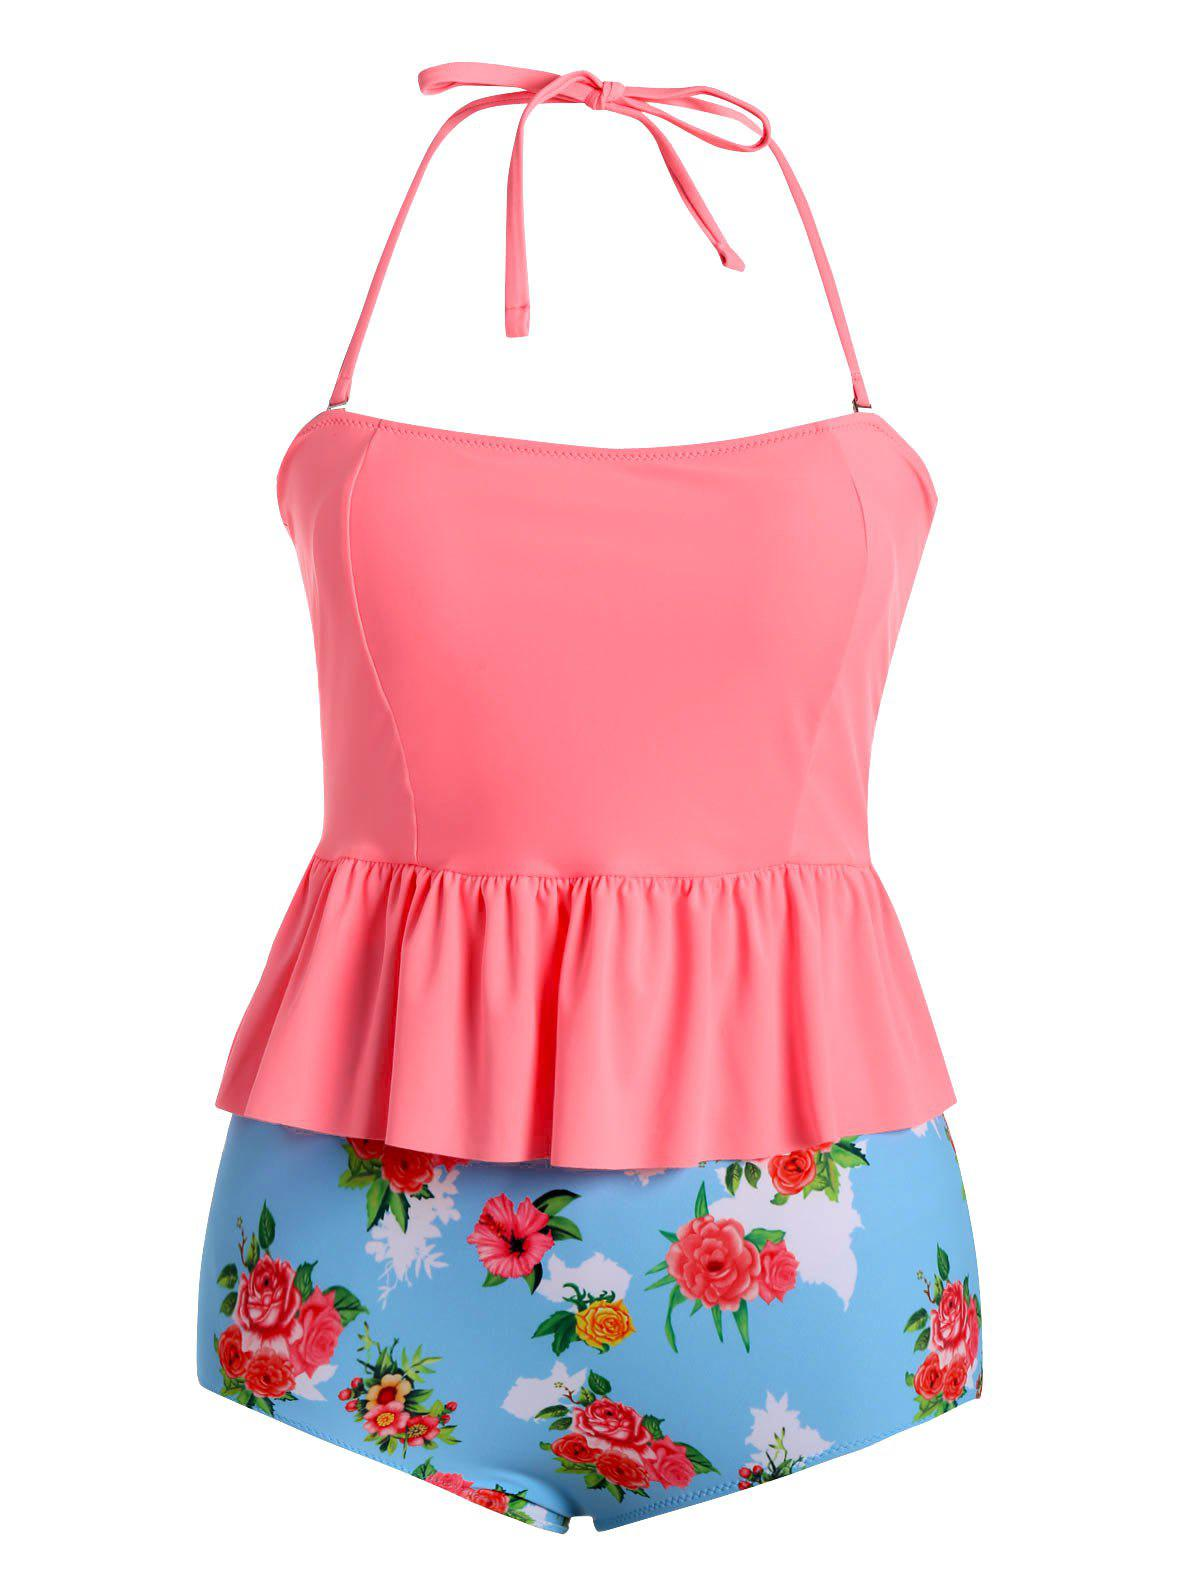 Costume Tankini Floral Flounce Plus Size - Rose Clair 2XL